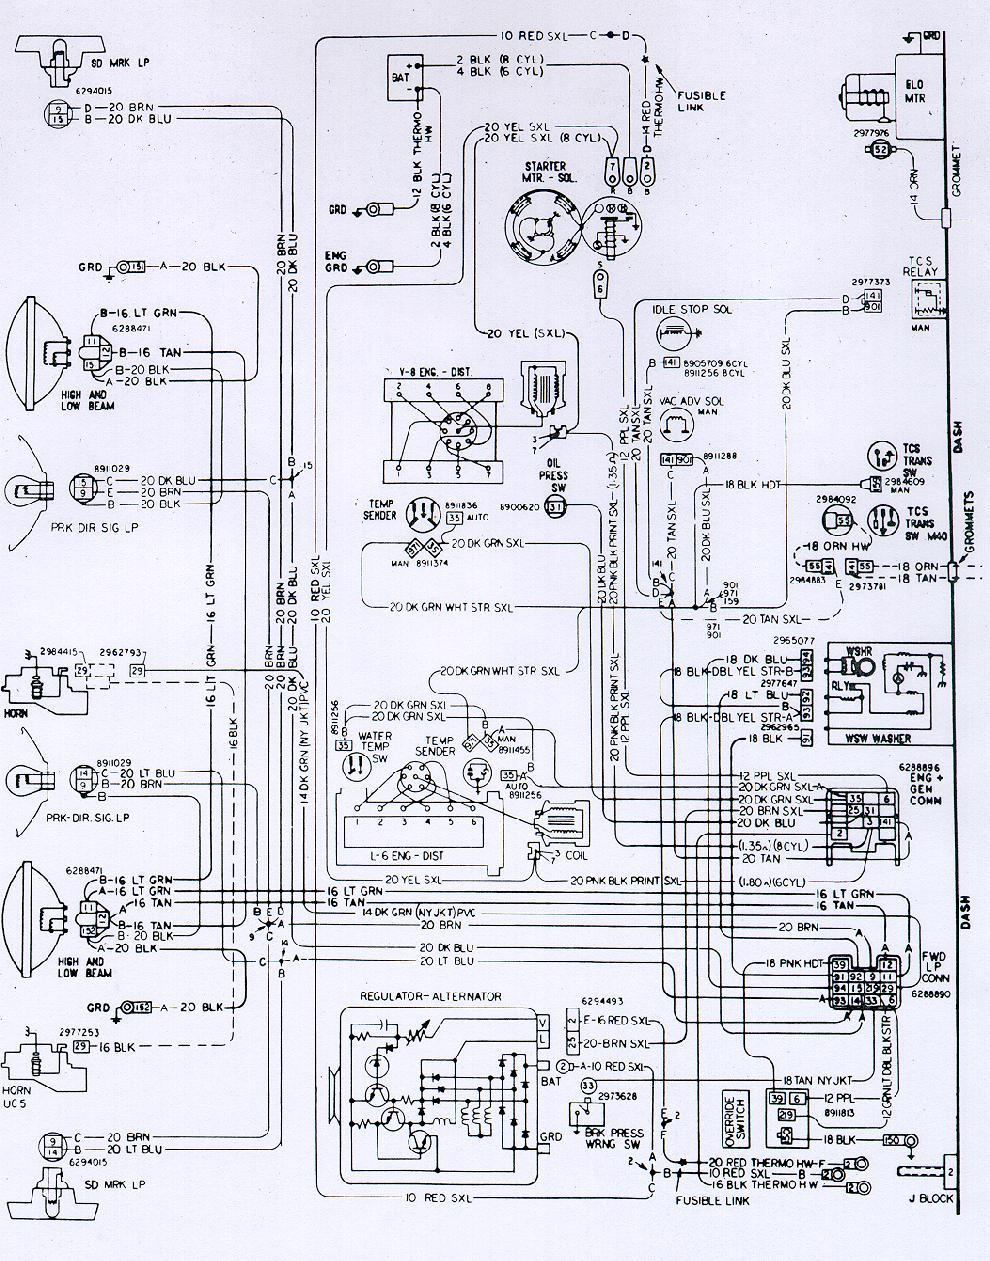 hight resolution of 1979 camaro wiring diagram download simple wiring post 1998 camaro wiring harness diagram 1979 camaro wiring diagram download